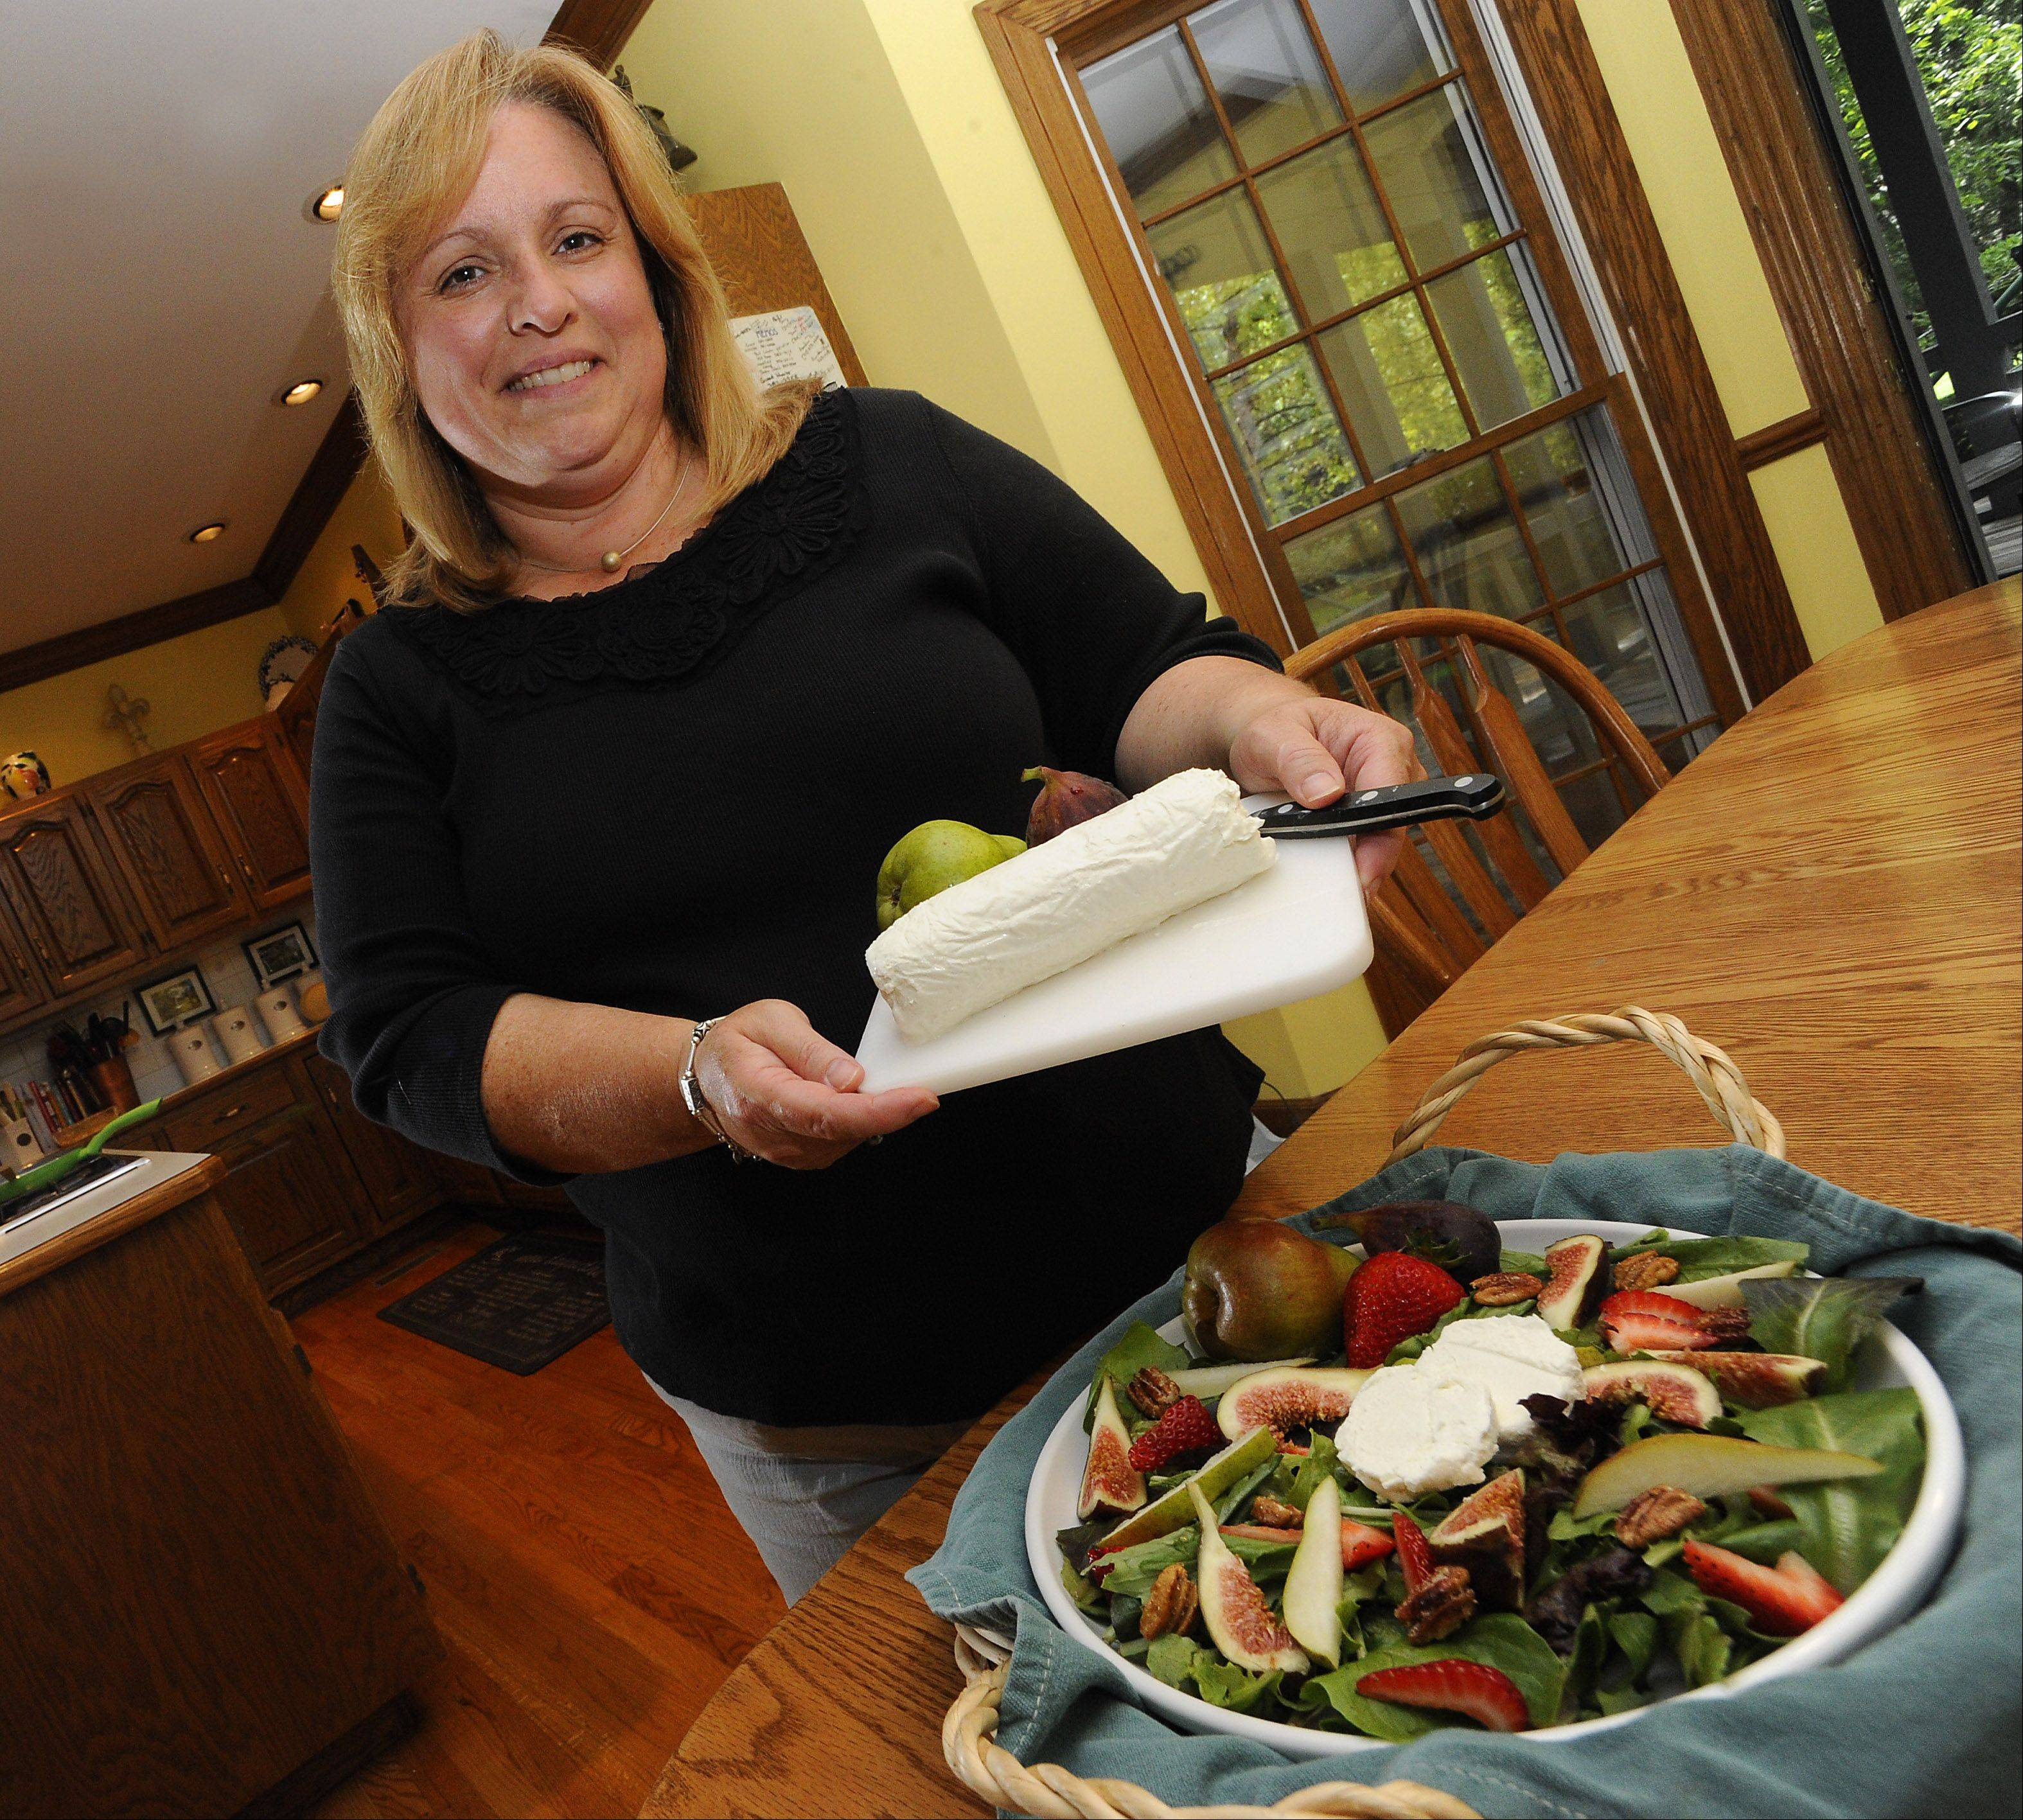 Mark Welsh/mwelsh@dailyherald.com Cook of the Week Challenge contestant Penny Kazmier of South Barrington with Goat Cheese her favorite ingredient in her foods.